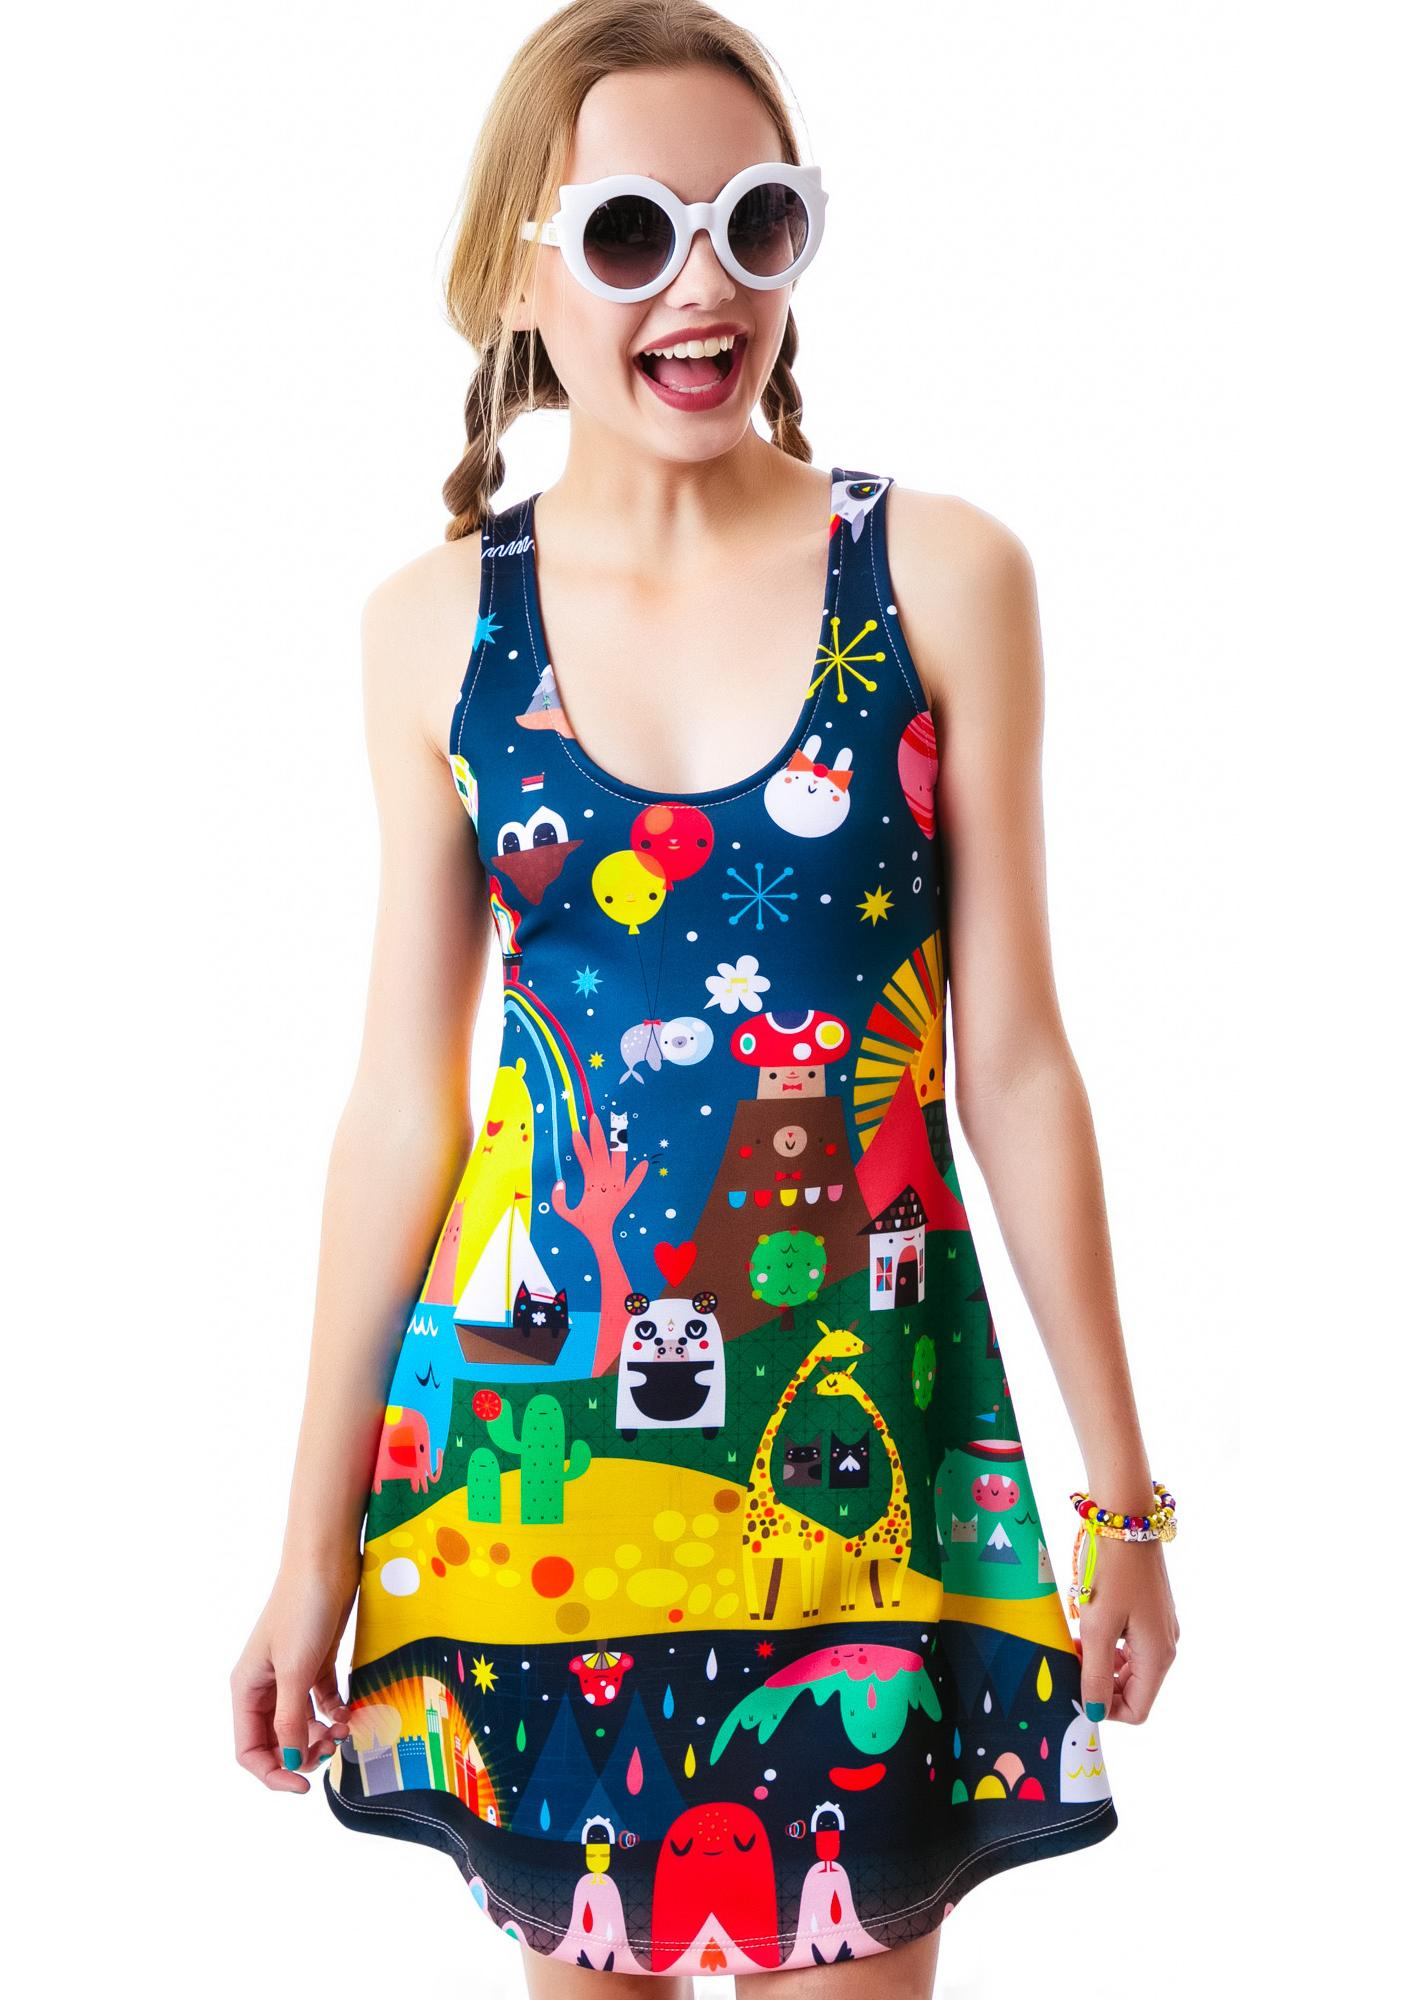 Japan L.A. Super Mini Universe Dress